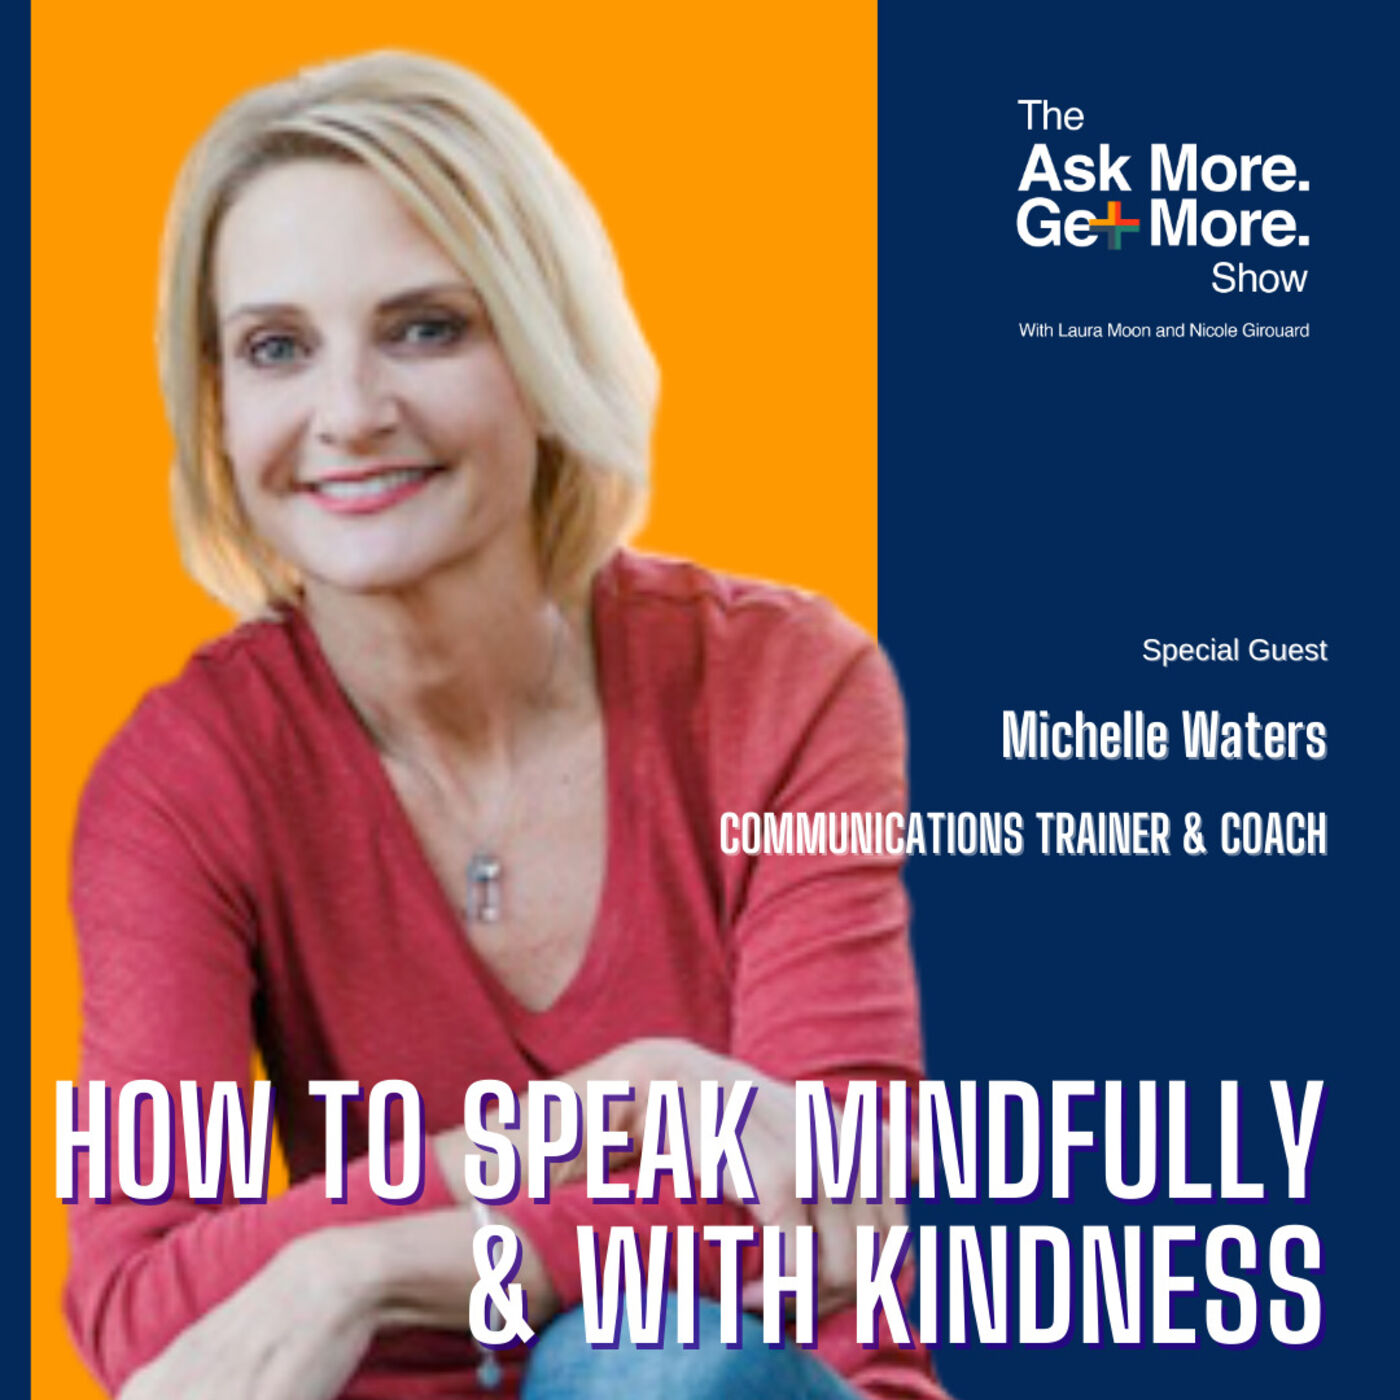 A Paycheque is Not Recognition - How to Speak Mindfully at Work [Michelle Waters]